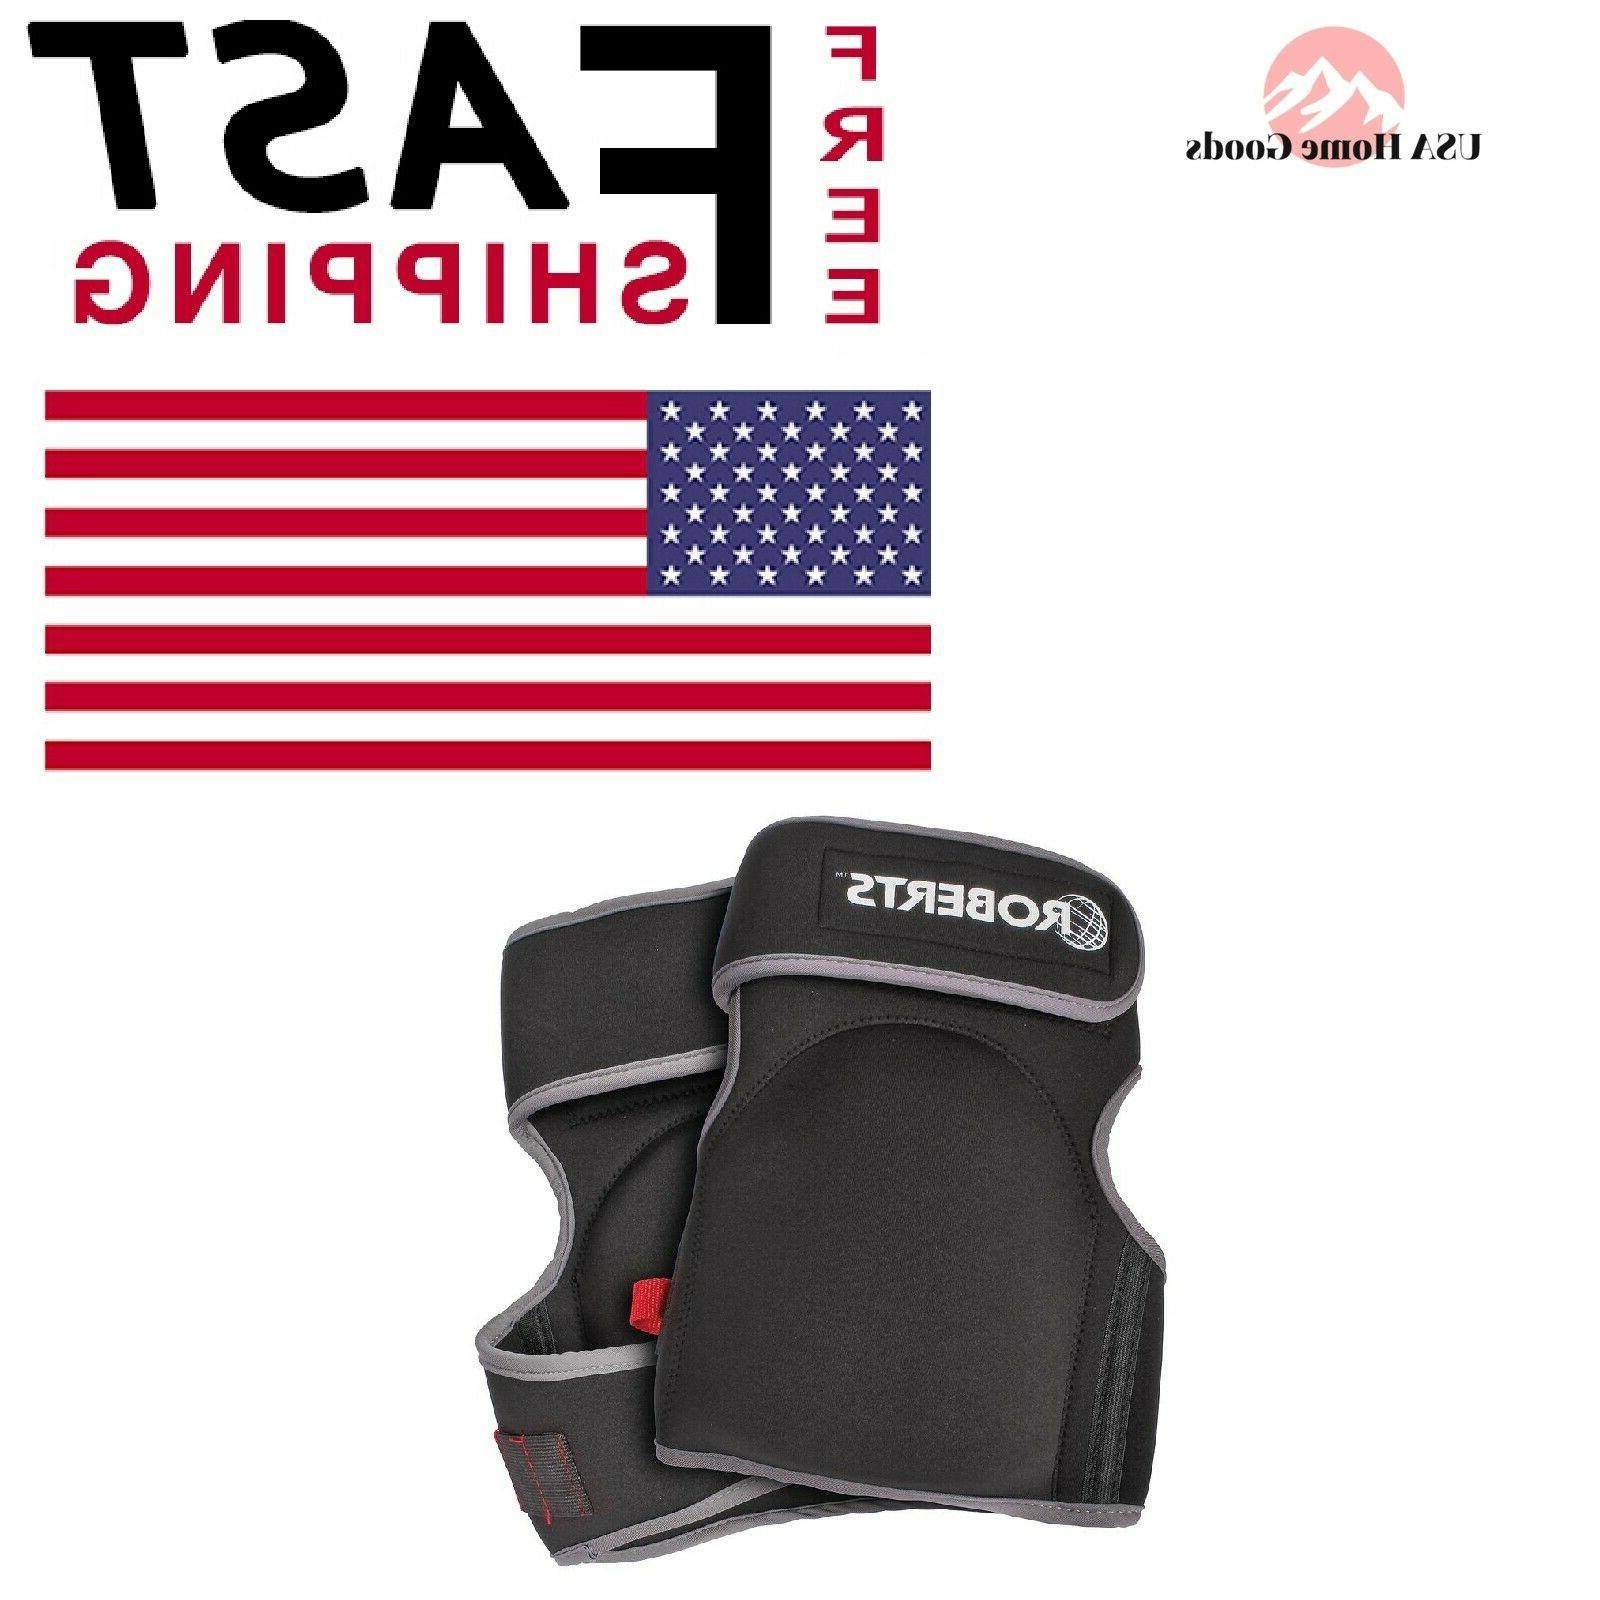 Roberts Pro Carpet Knee Pads Designed Specifically Soft Non